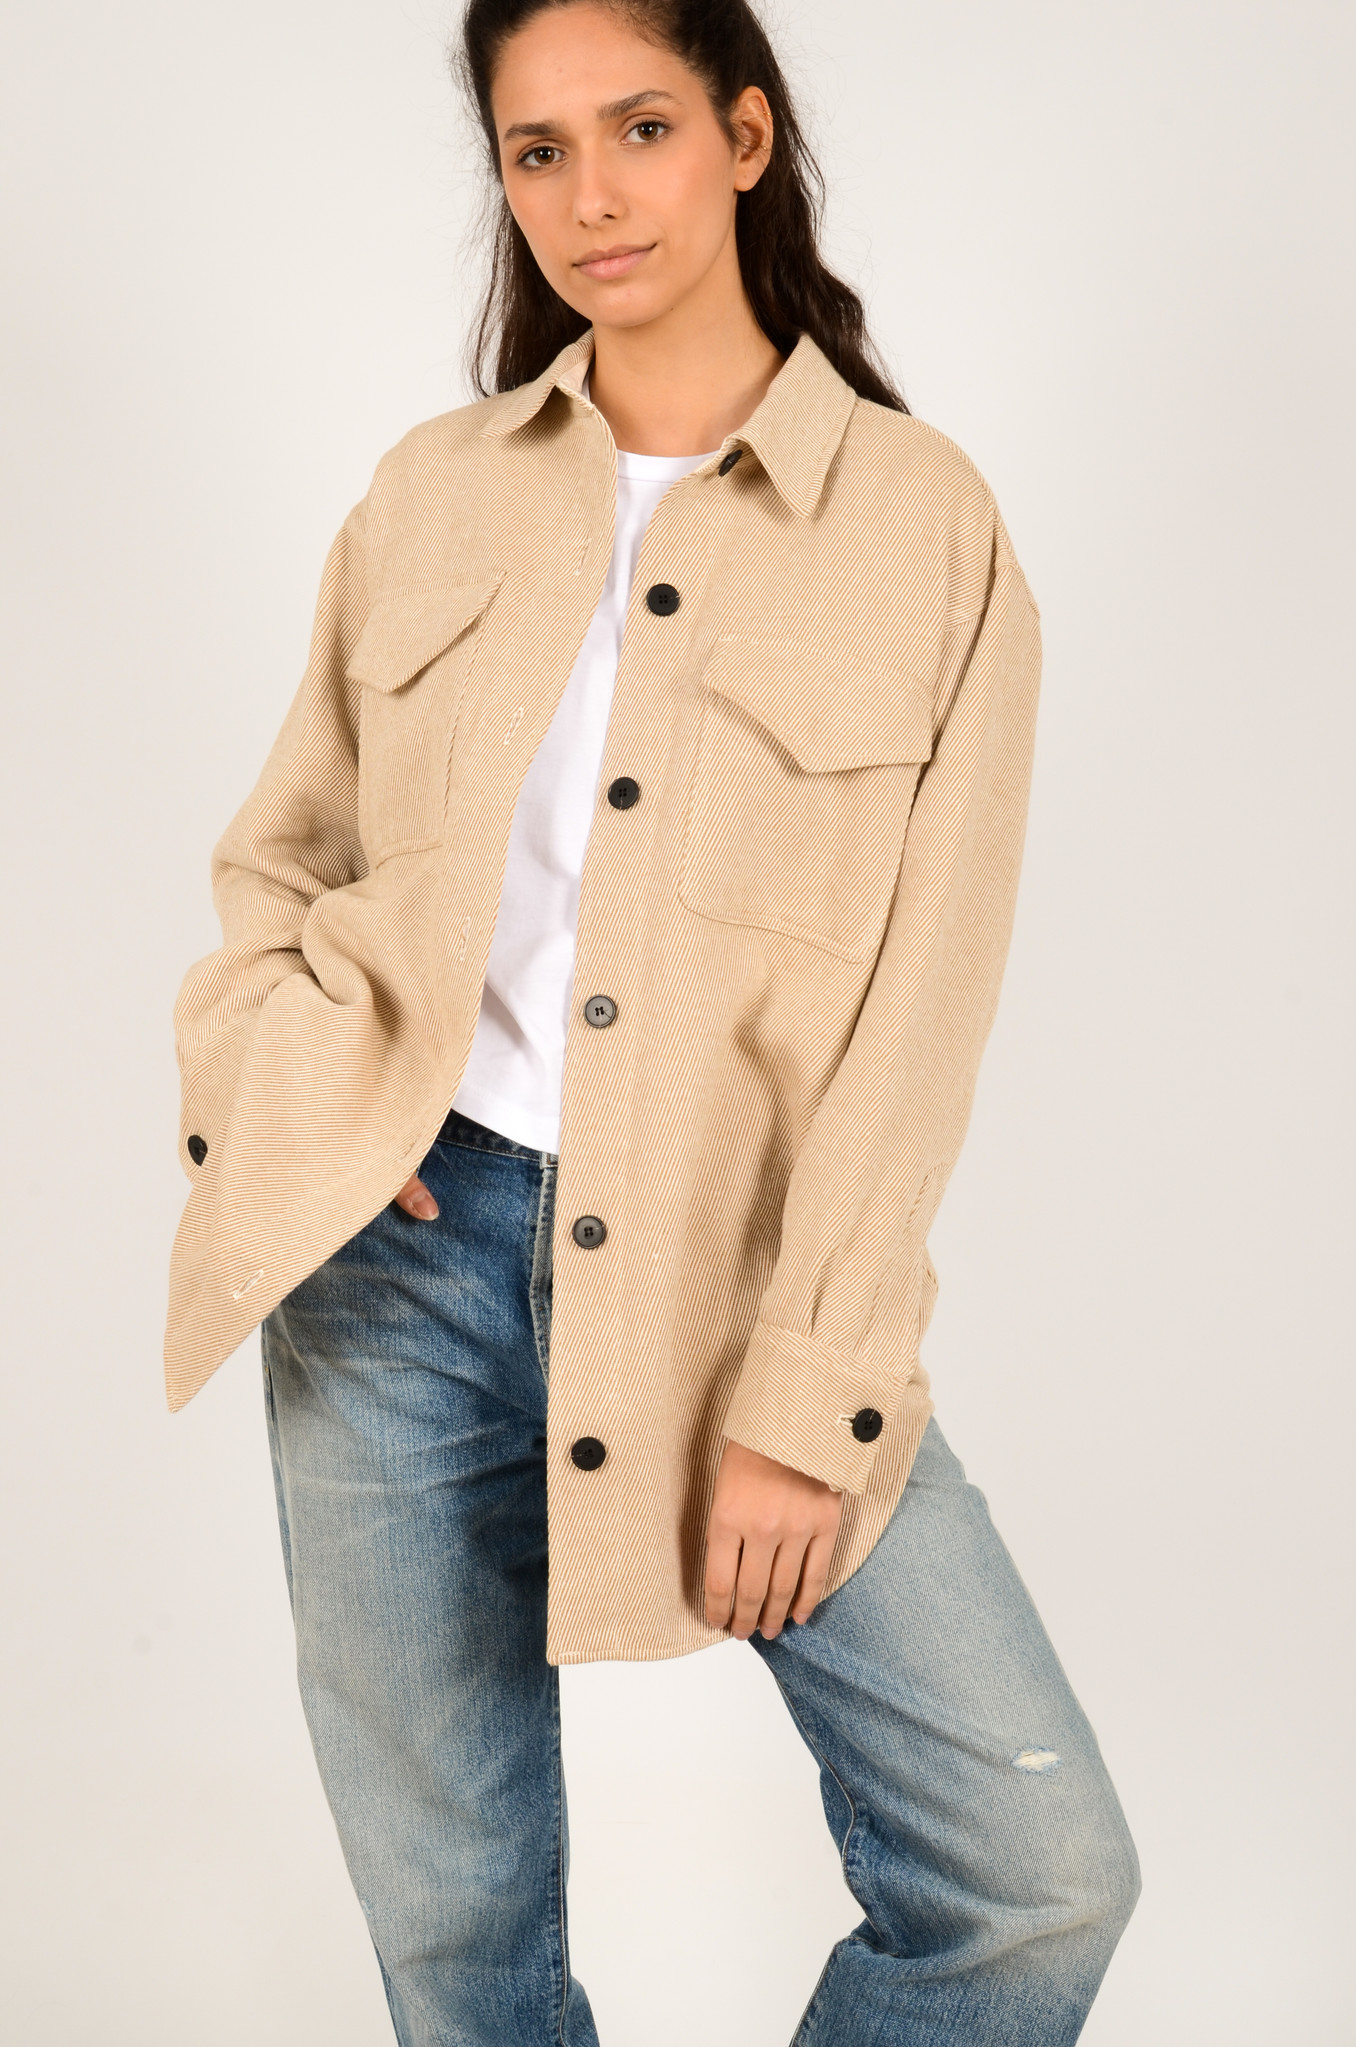 PALERMO SHIRT COAT IN CAMEL-5